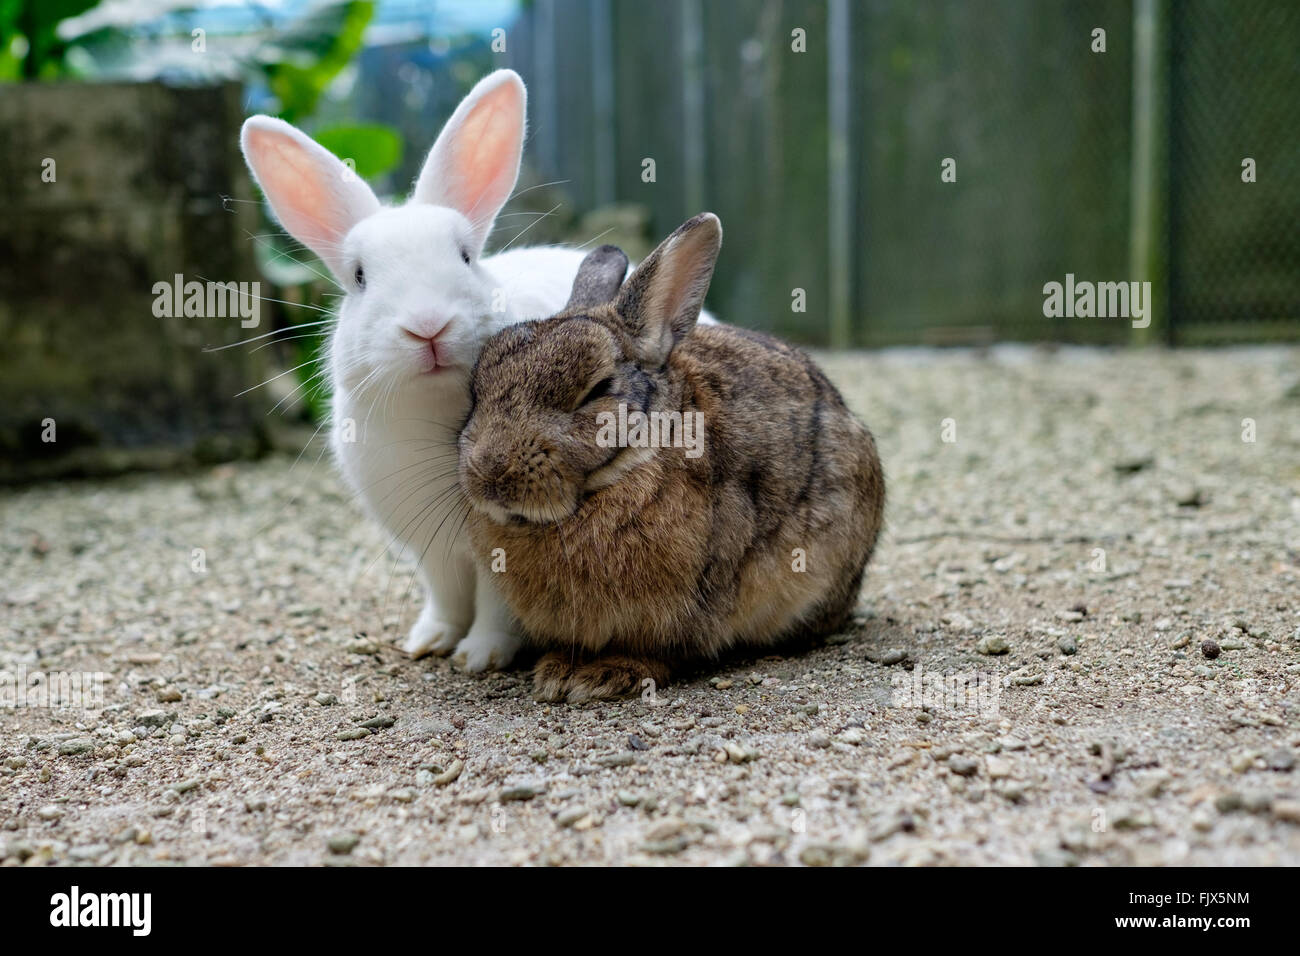 Portrait Of Rabbits On Field - Stock Image